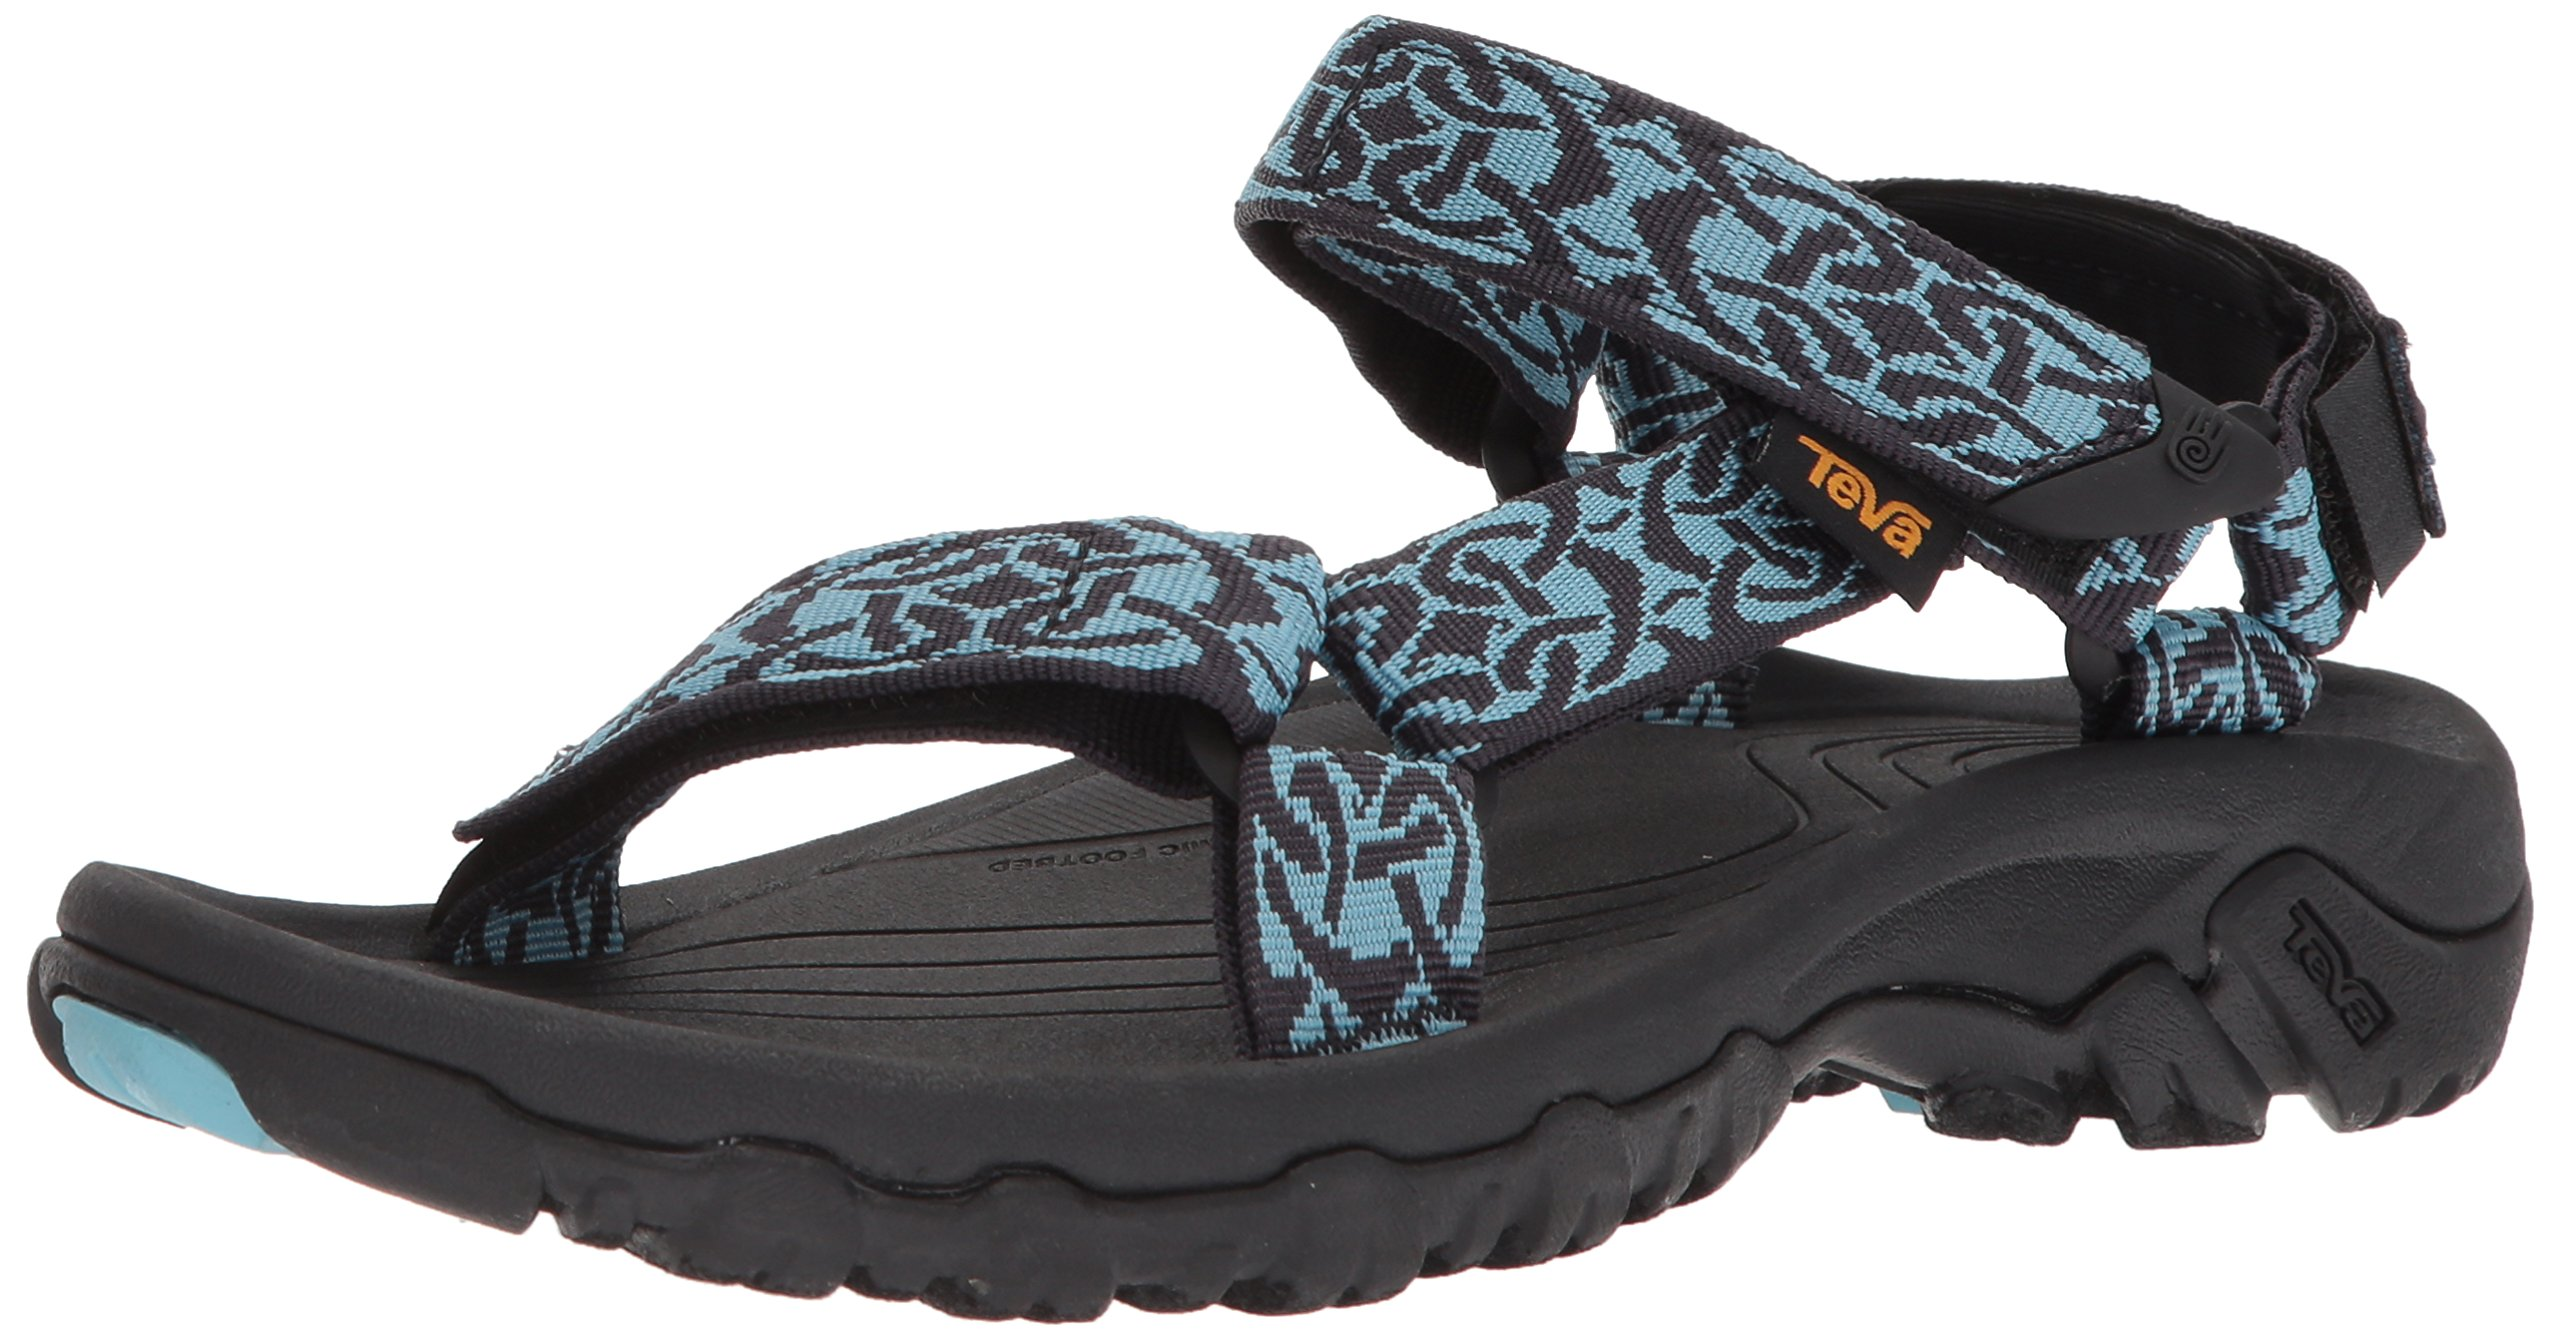 Teva Women's W Hurricane 4 Sport Sandal, Celtic Aqua, 8 M US by Teva